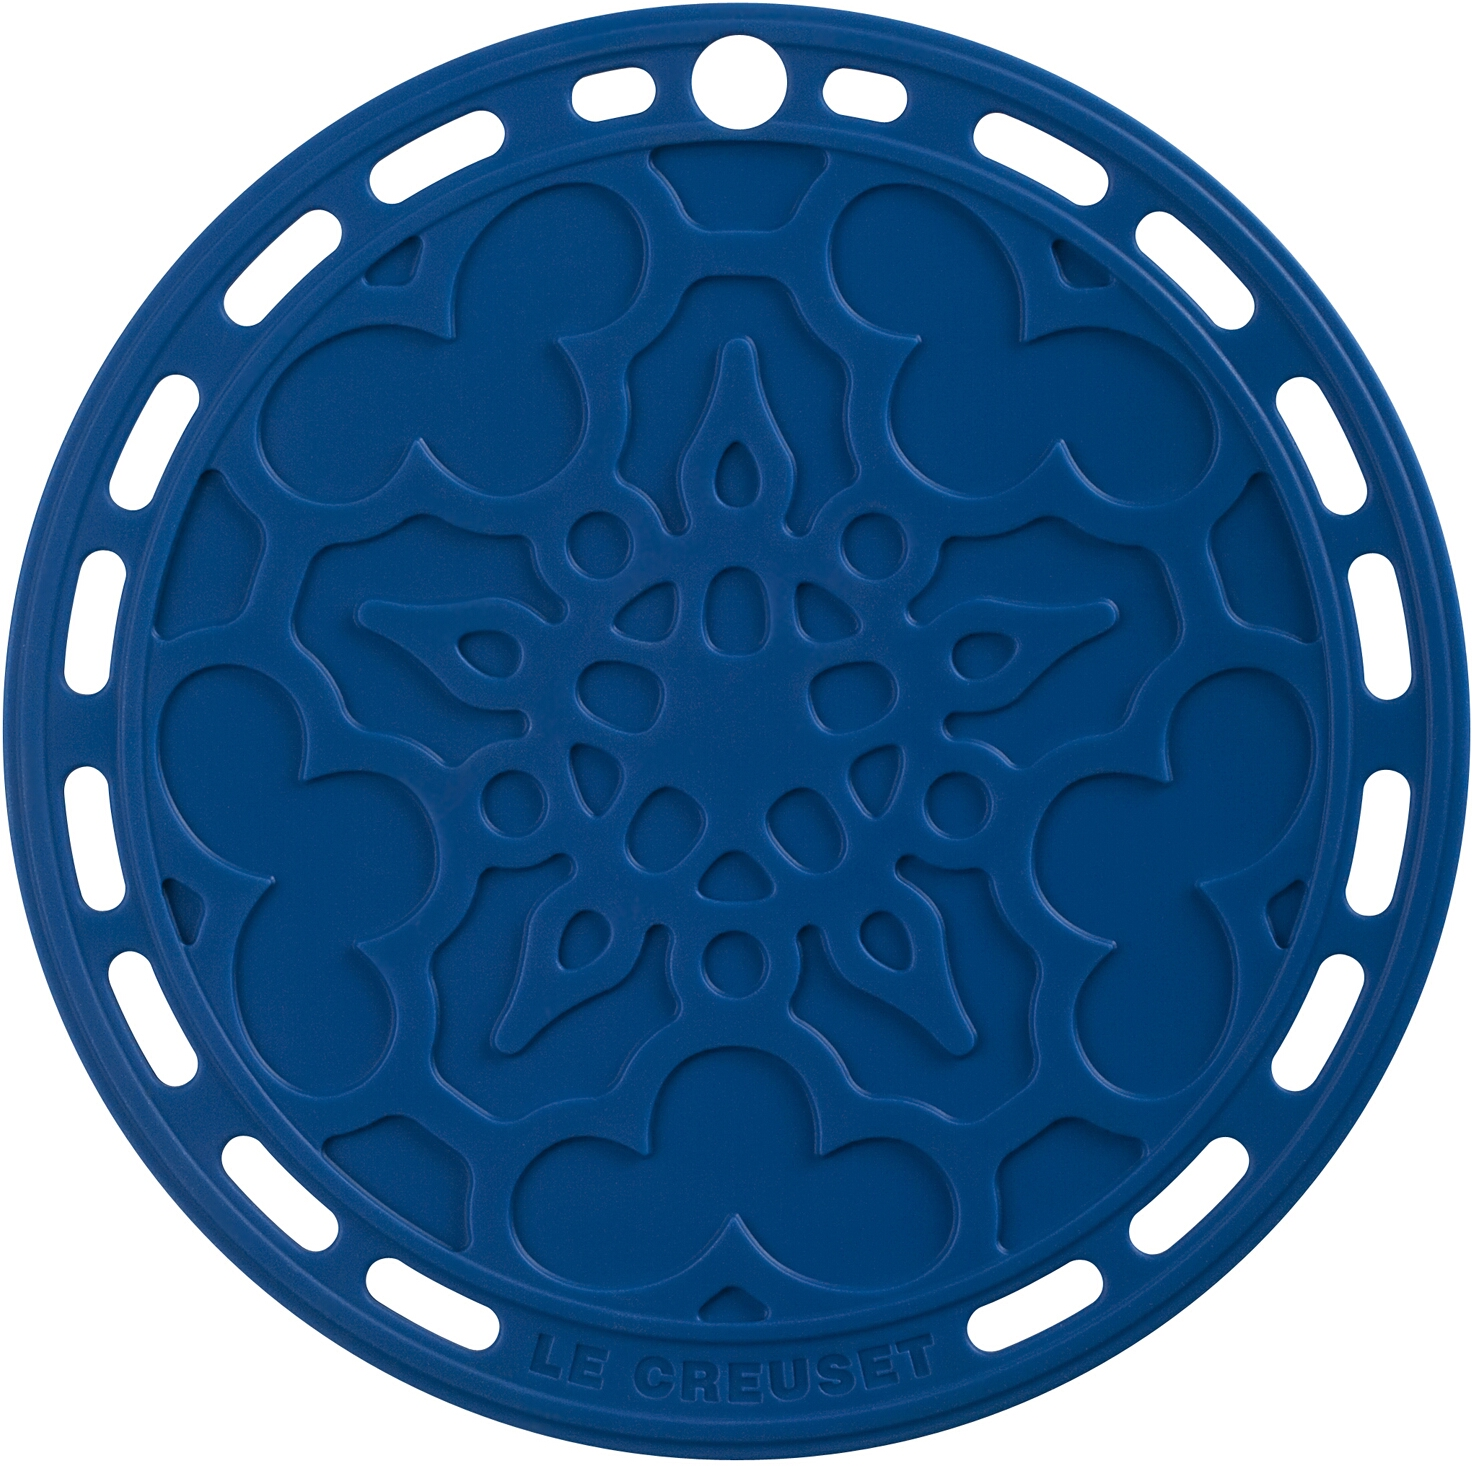 Le Creuset Marseille Blue Silicone French Trivet, 8 Inch